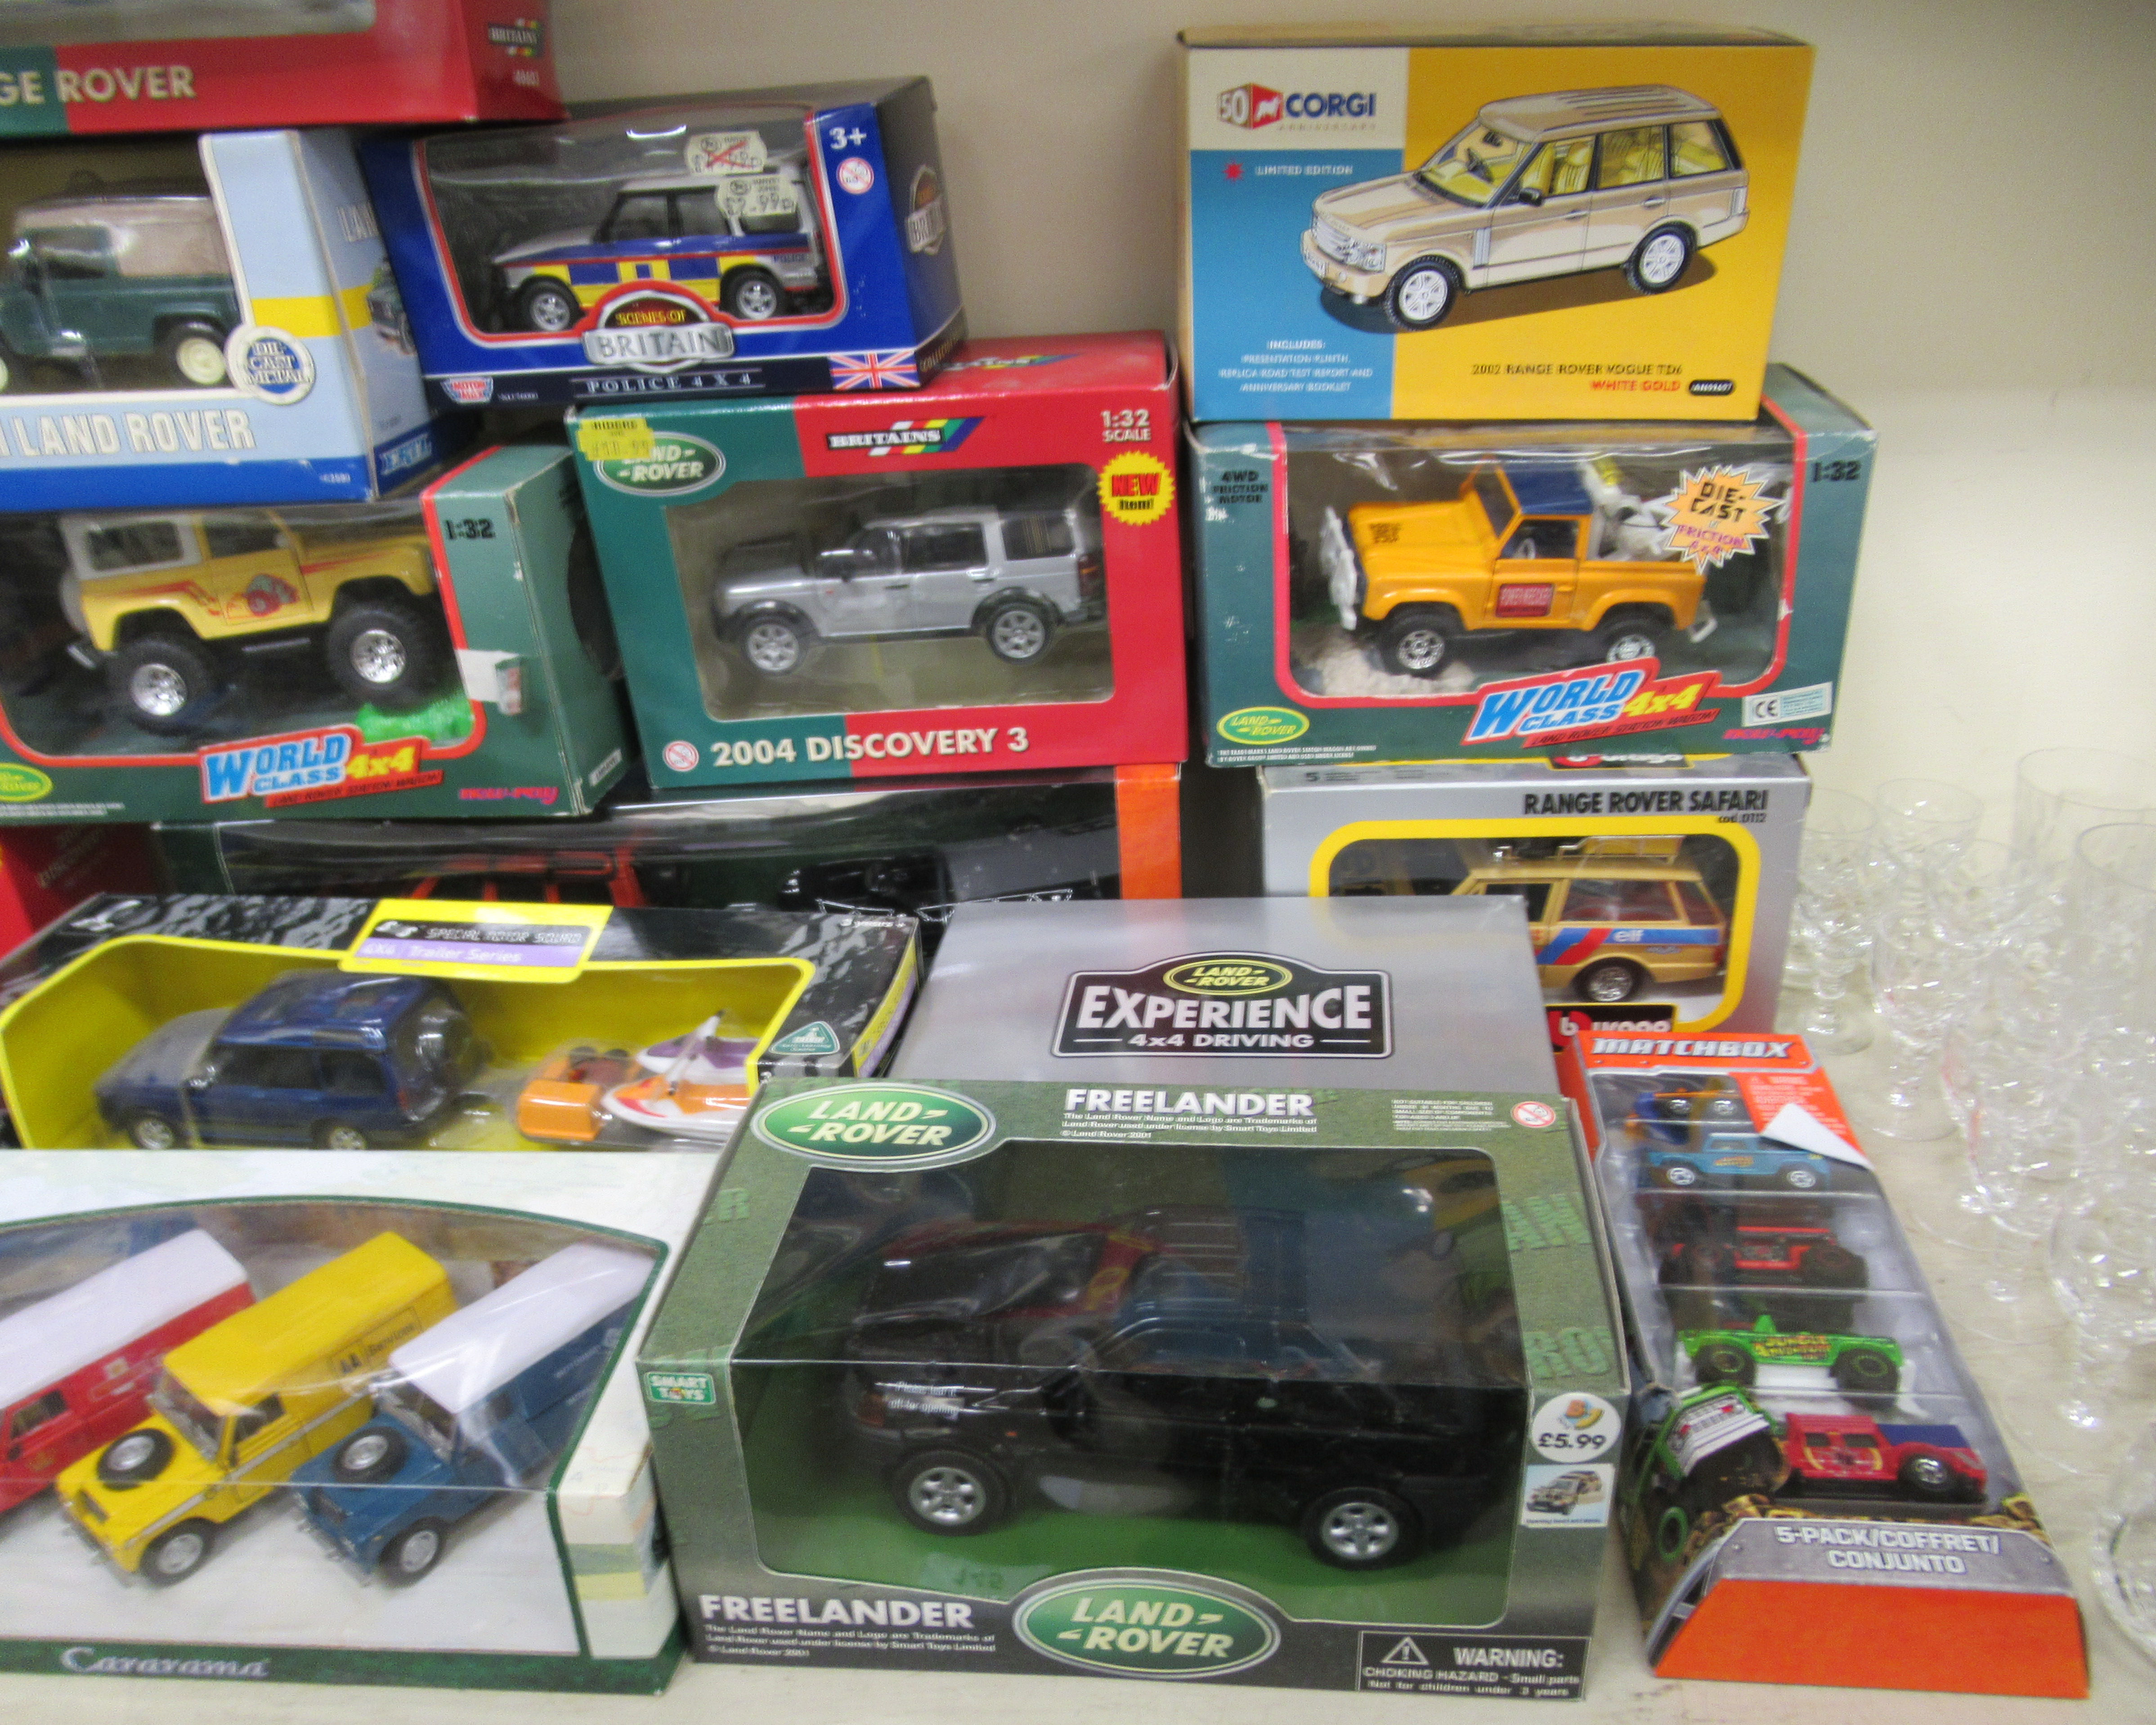 Diecast model vehicles: to include a Corgi 2002 Range Rover Vogue boxed - Image 4 of 4